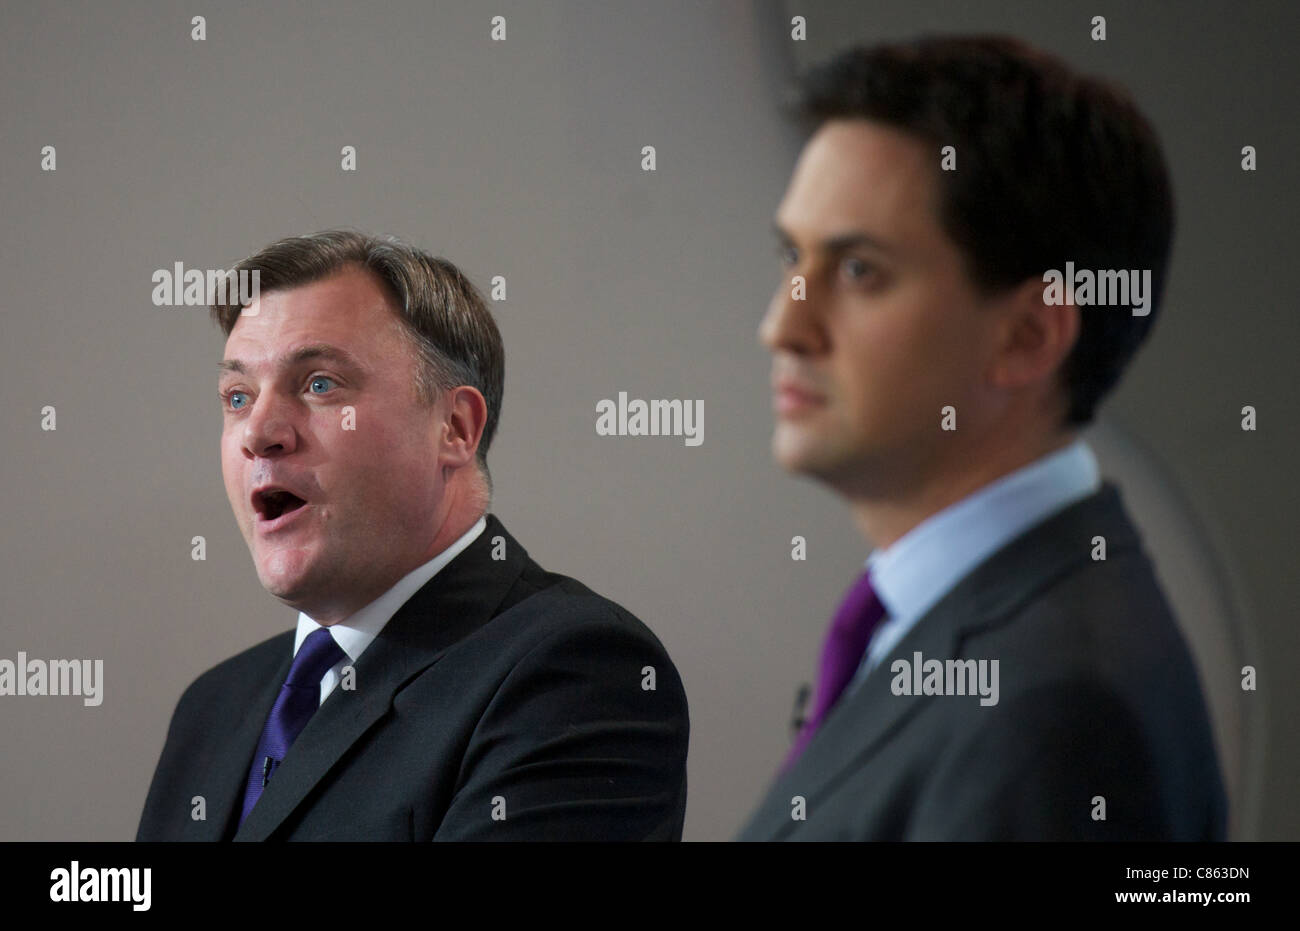 LONDON, UNITED KINGDOM 13 OCTOBER : Leader of the Labour party Ed Miliband and Shadow Chancellor Ed Balls speak - Stock Image